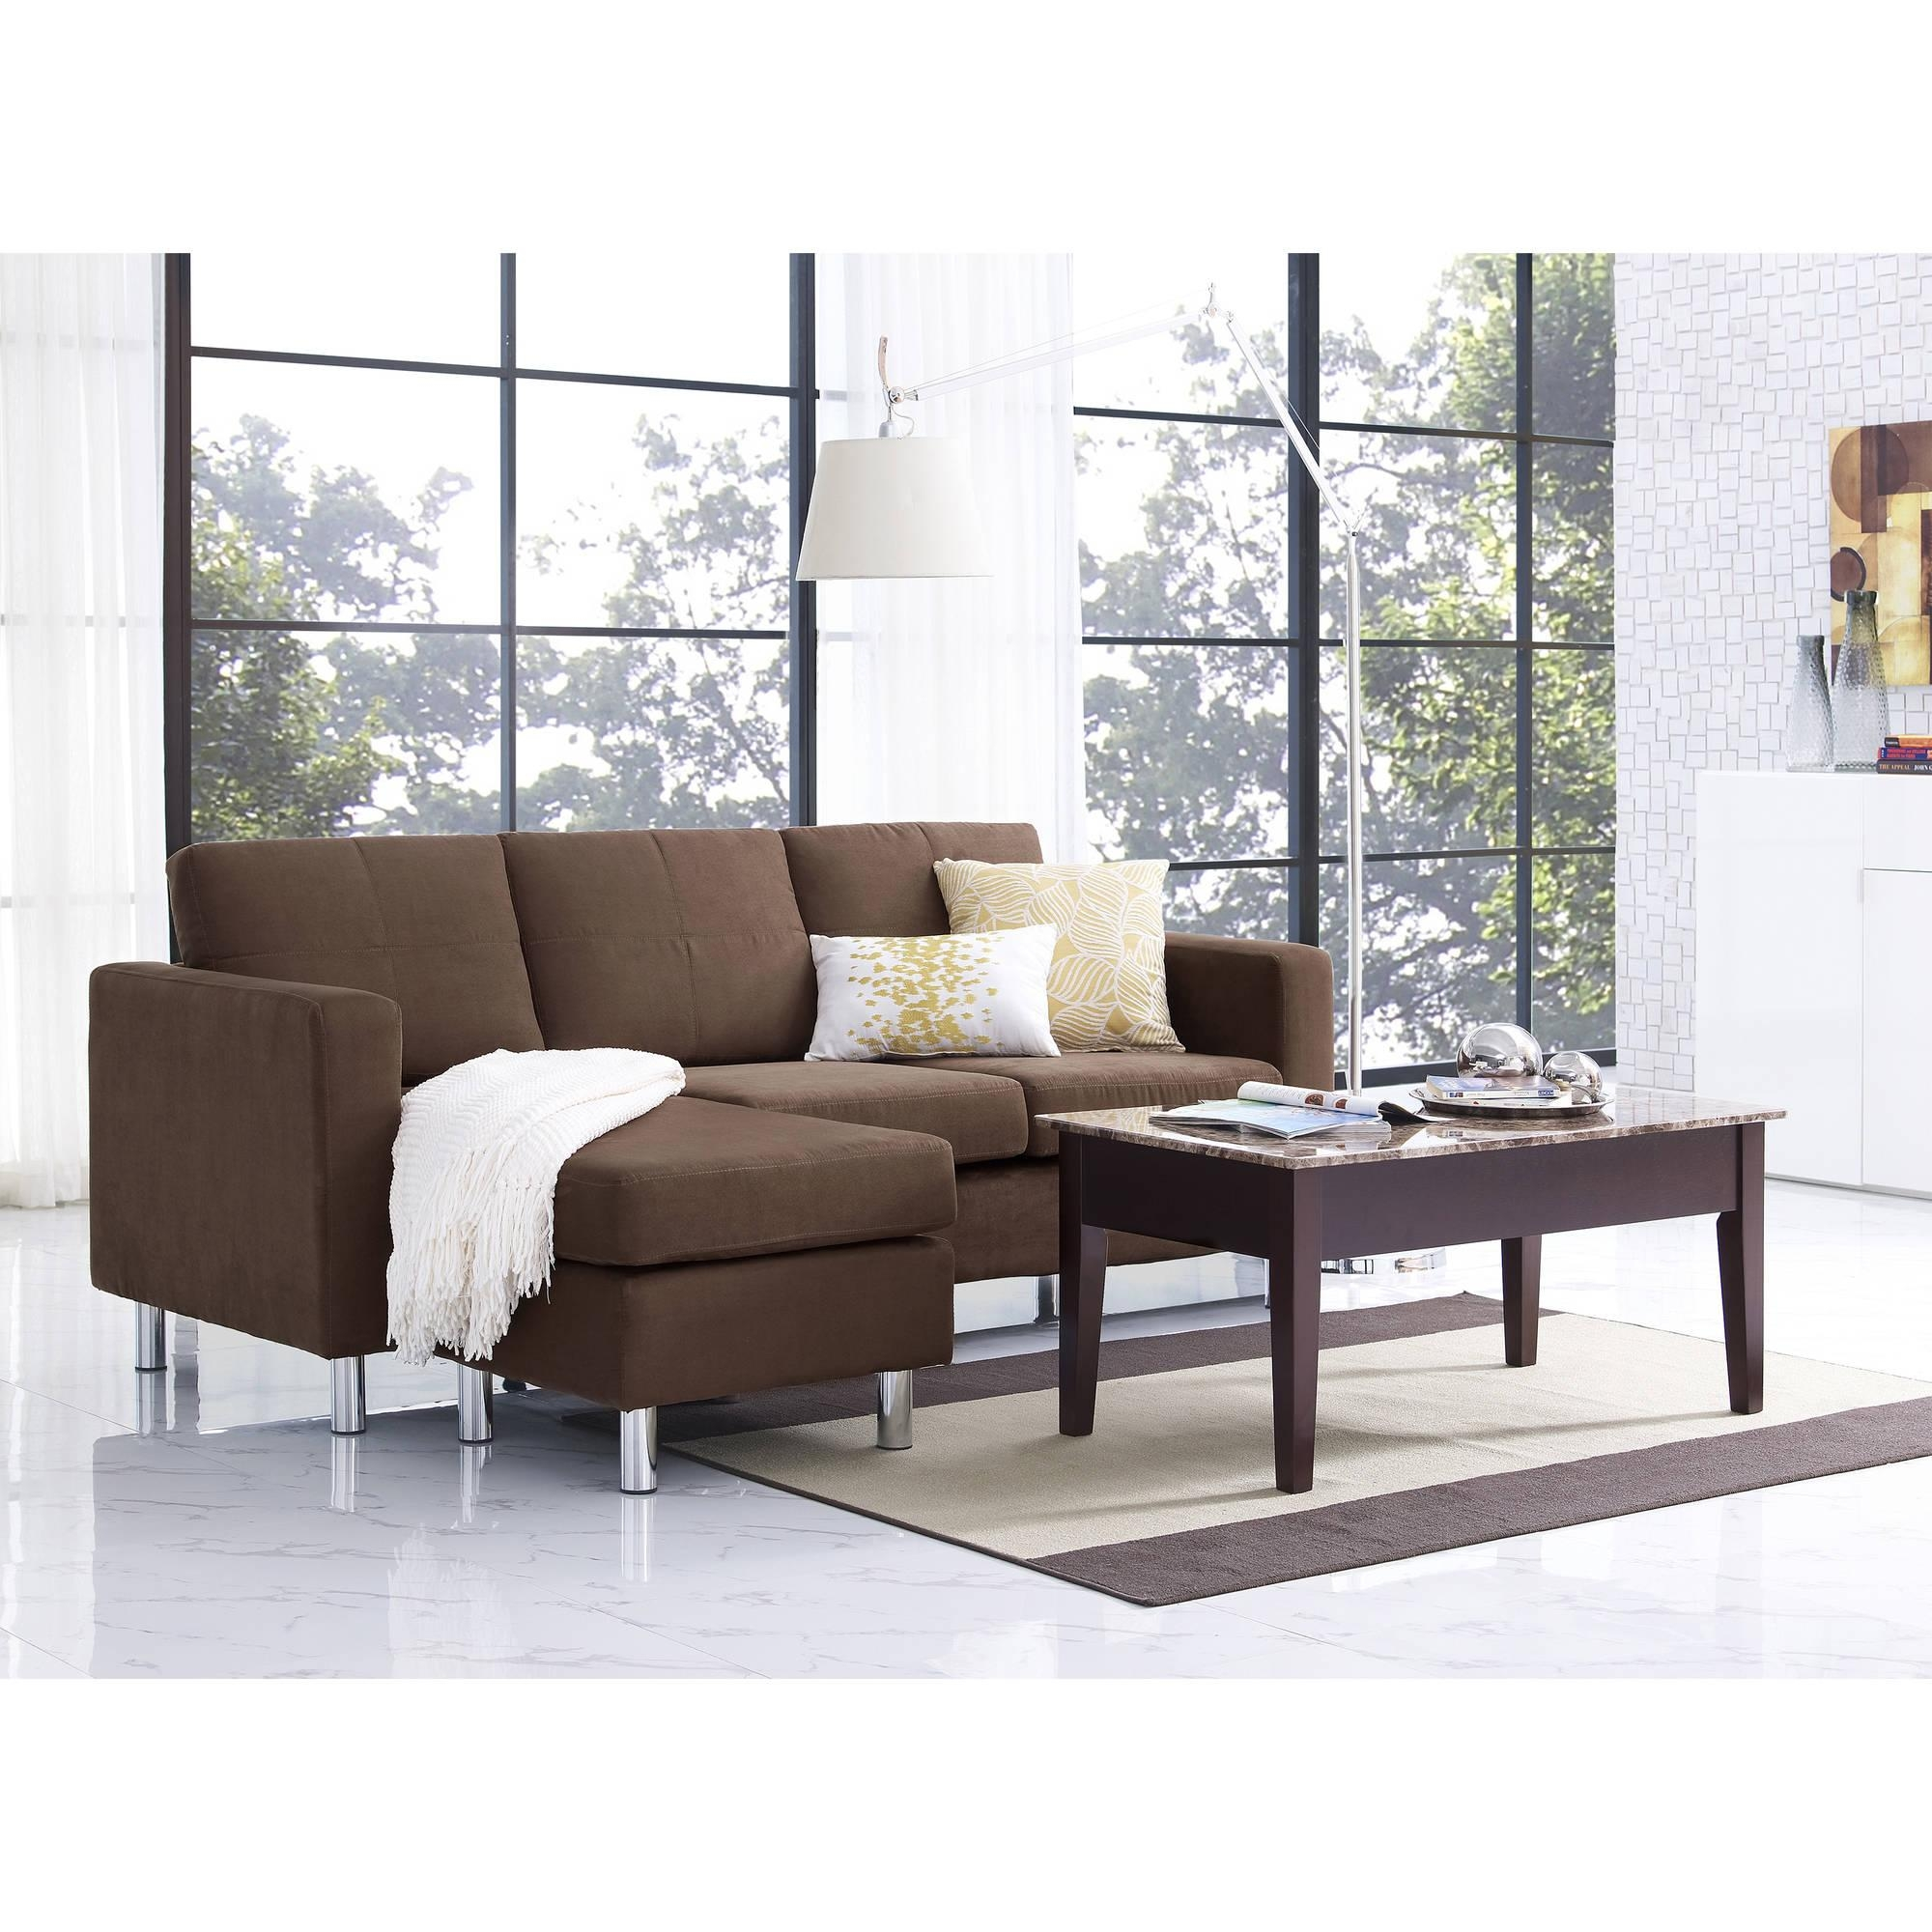 Dorel Living Small Spaces Configurable Sectional Sofa, Multiple Inside Small Sectional Sofas For Small Spaces (Image 9 of 20)